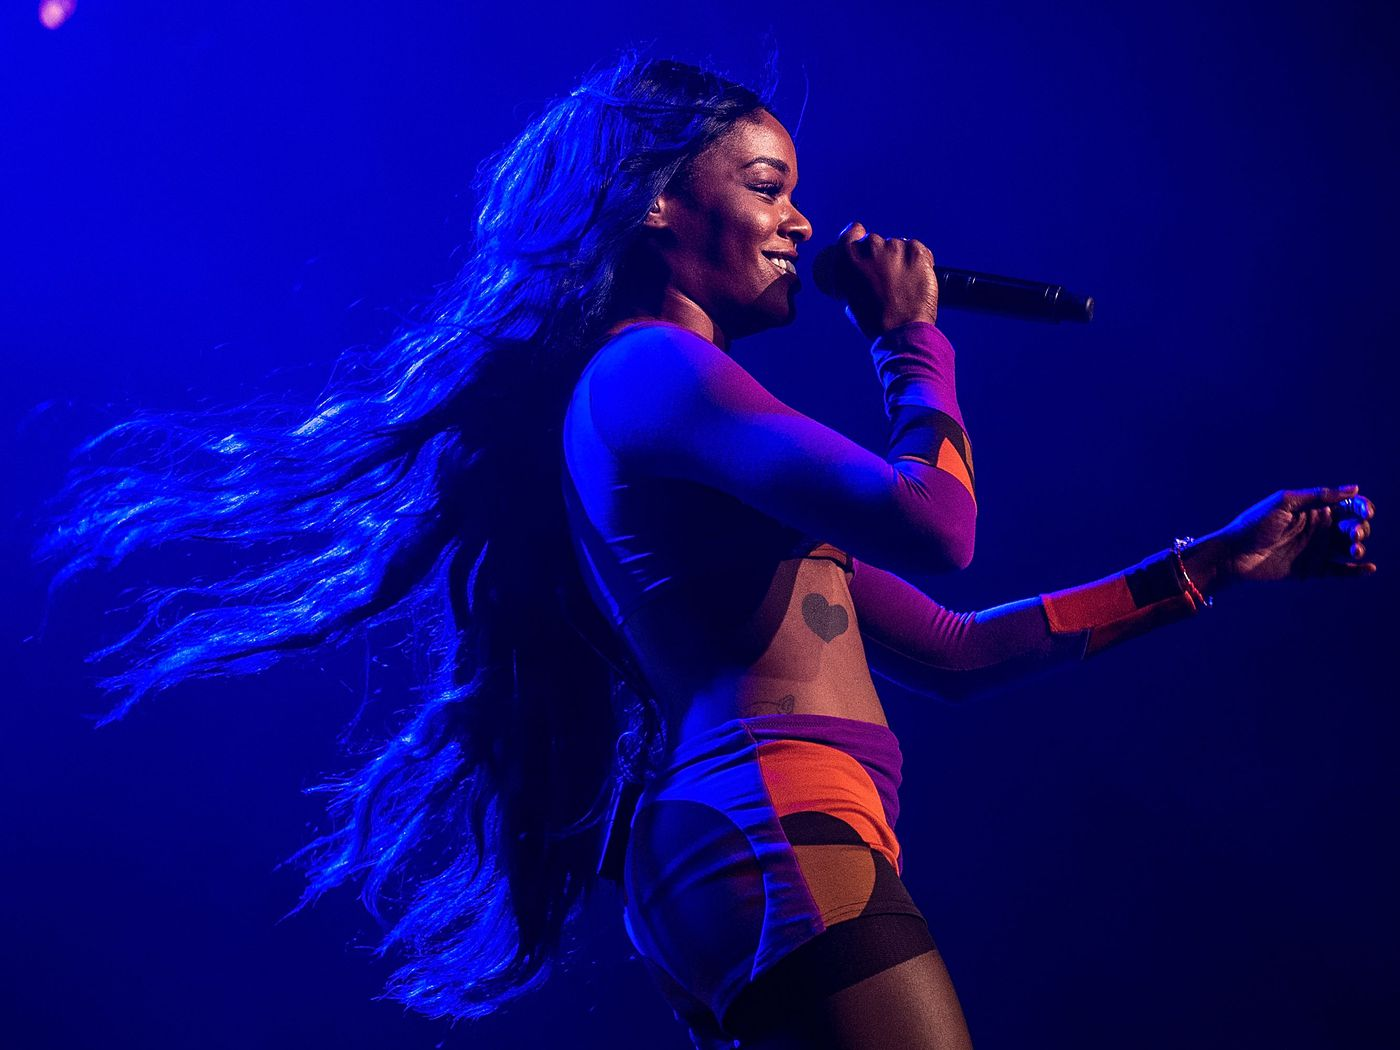 Azealia Banks, Elon Musk, and Grimes, explained - Vox